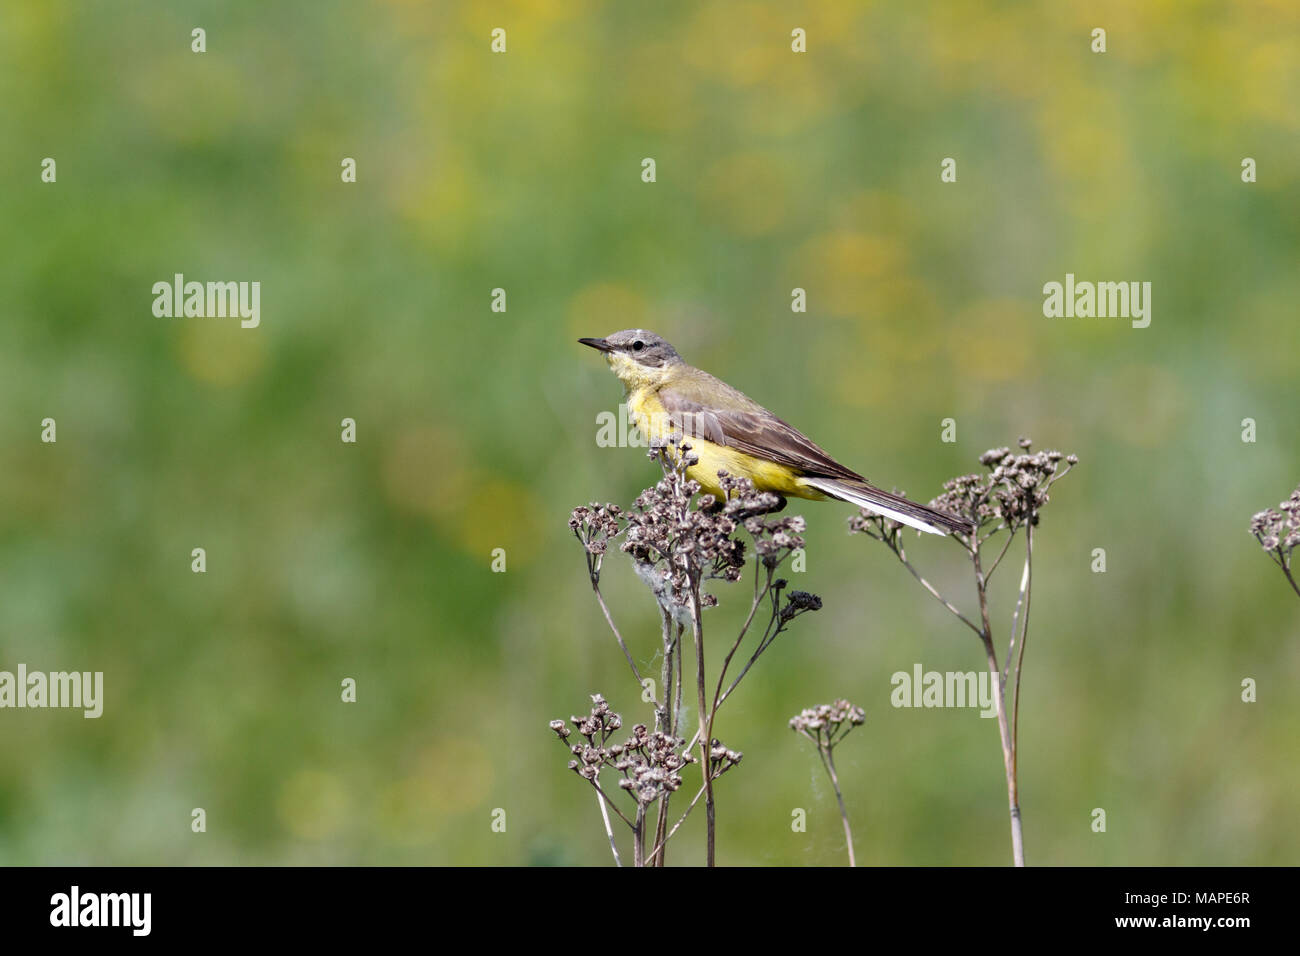 Yellow Wagtail (Motacilla flava) in the nature - Stock Image